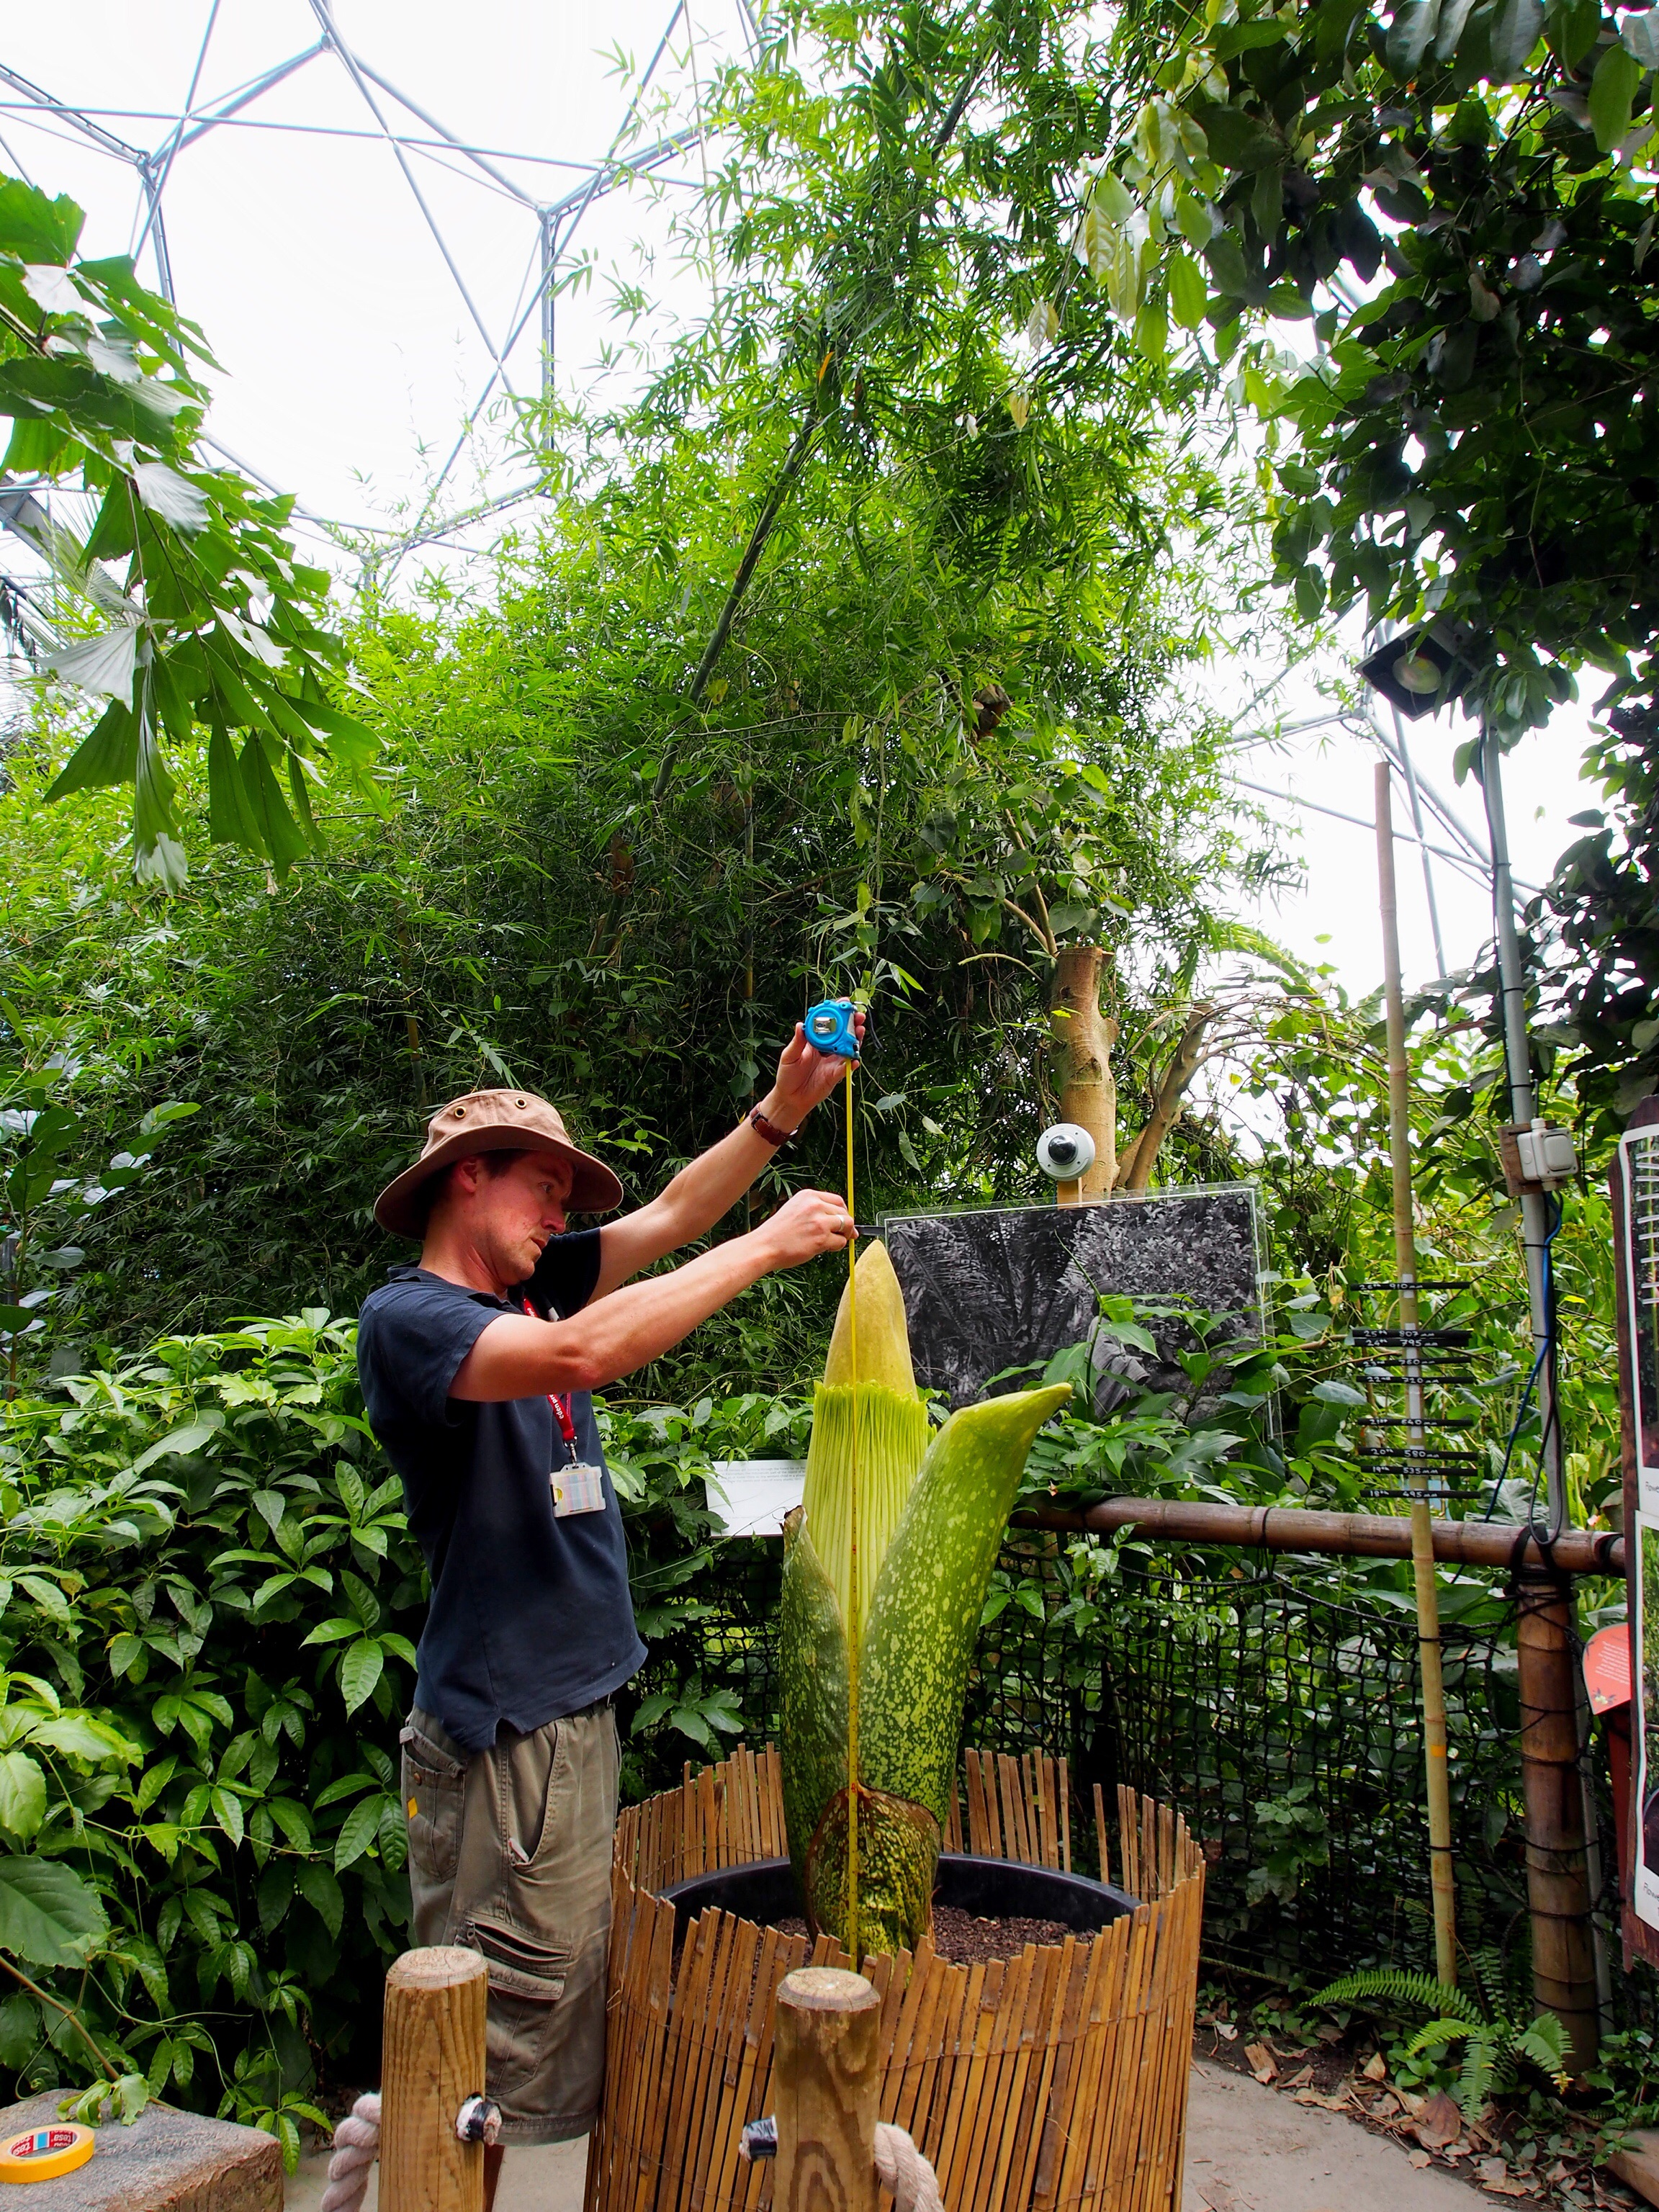 Measuring the Titan arum at the Eden Project in Cornwall| Conversation Pieces